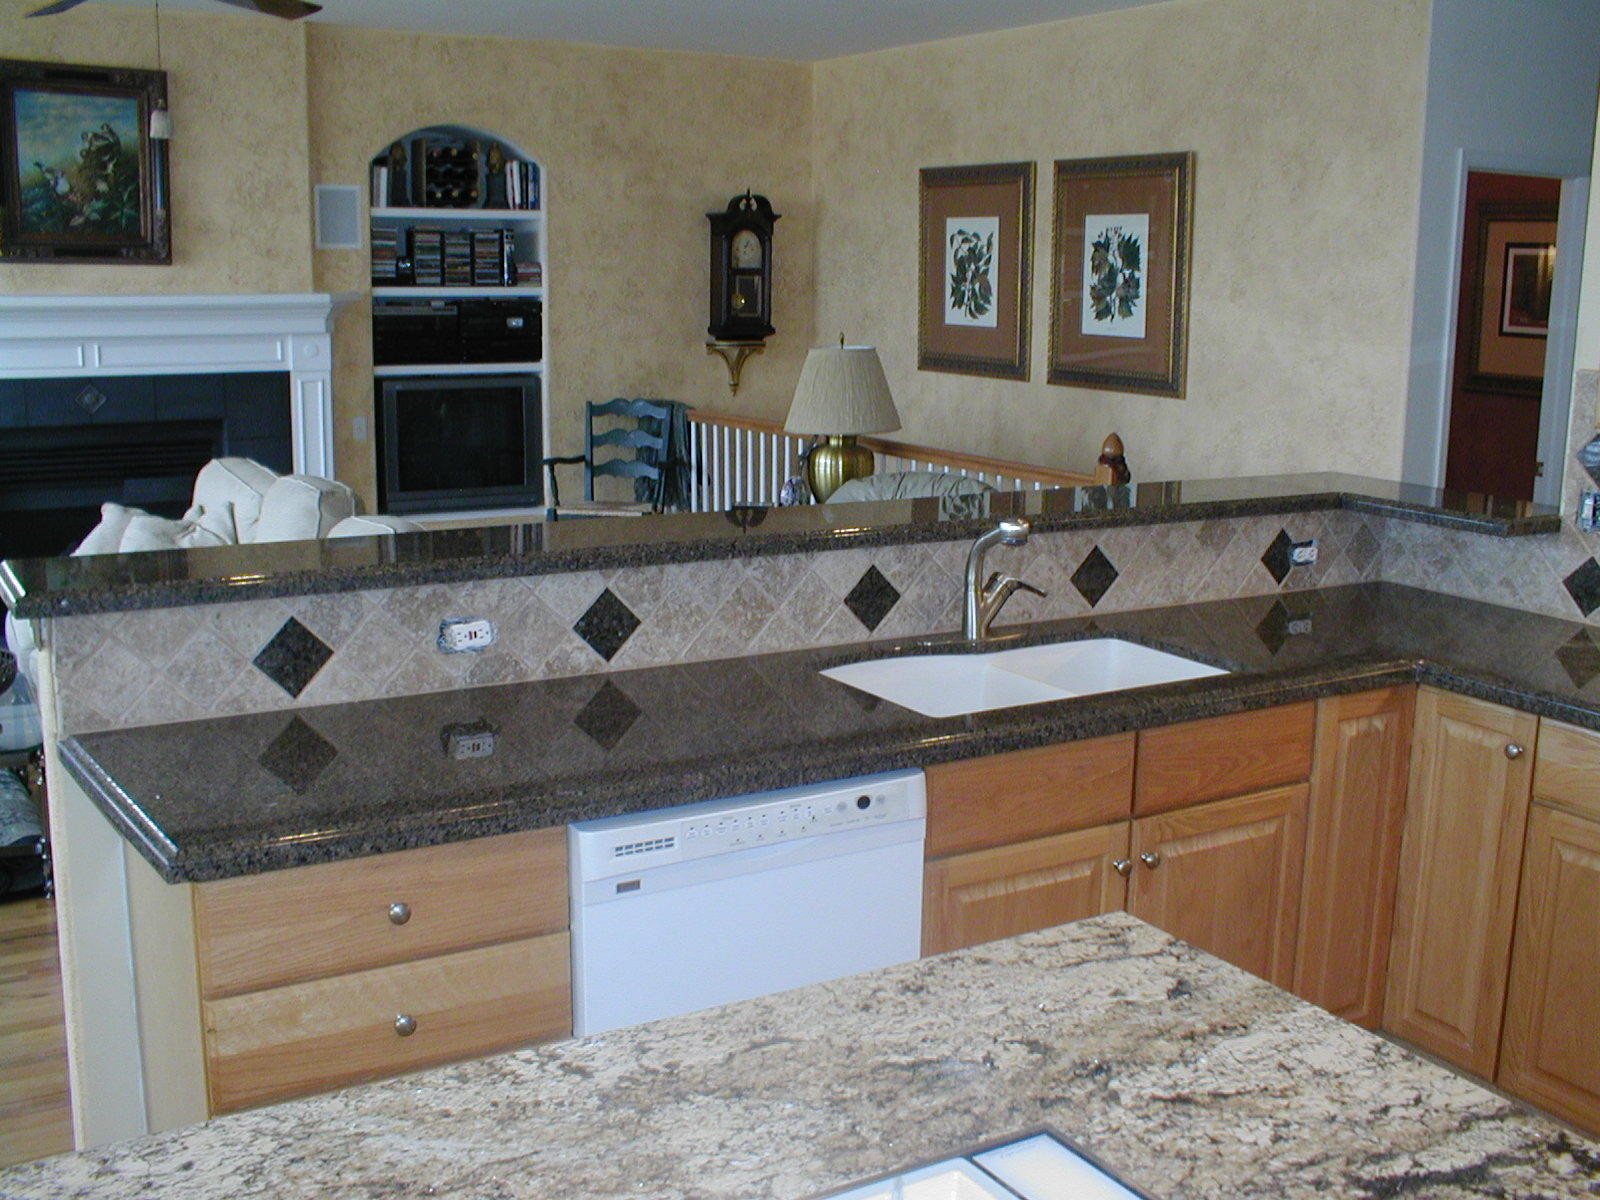 Integrity Installations............ (A Division Of Front Range Backsplash)